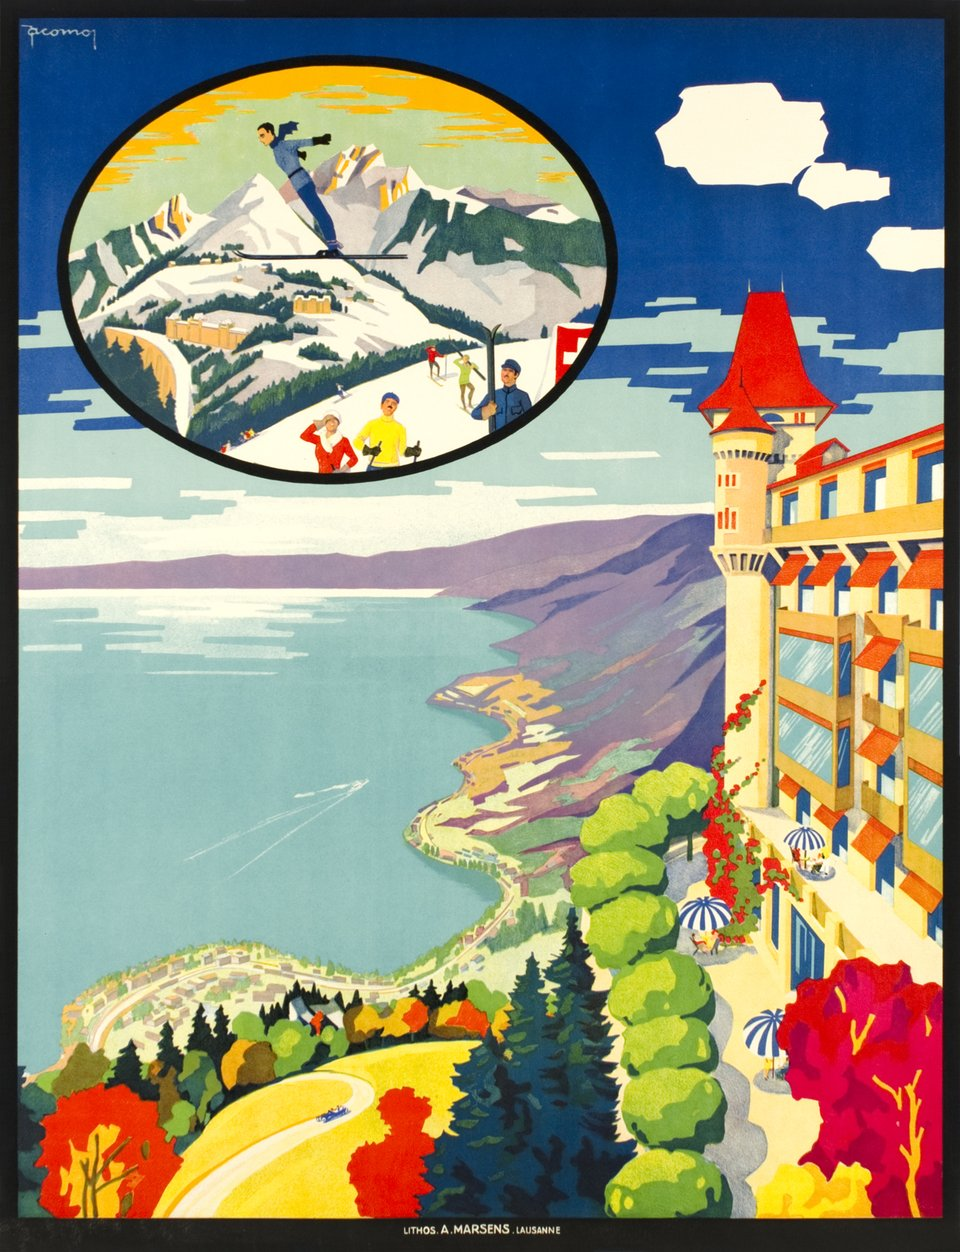 Caux s/ Montreux-Territet,  without the text – Vintage poster – Jacomo MULLER – 1925